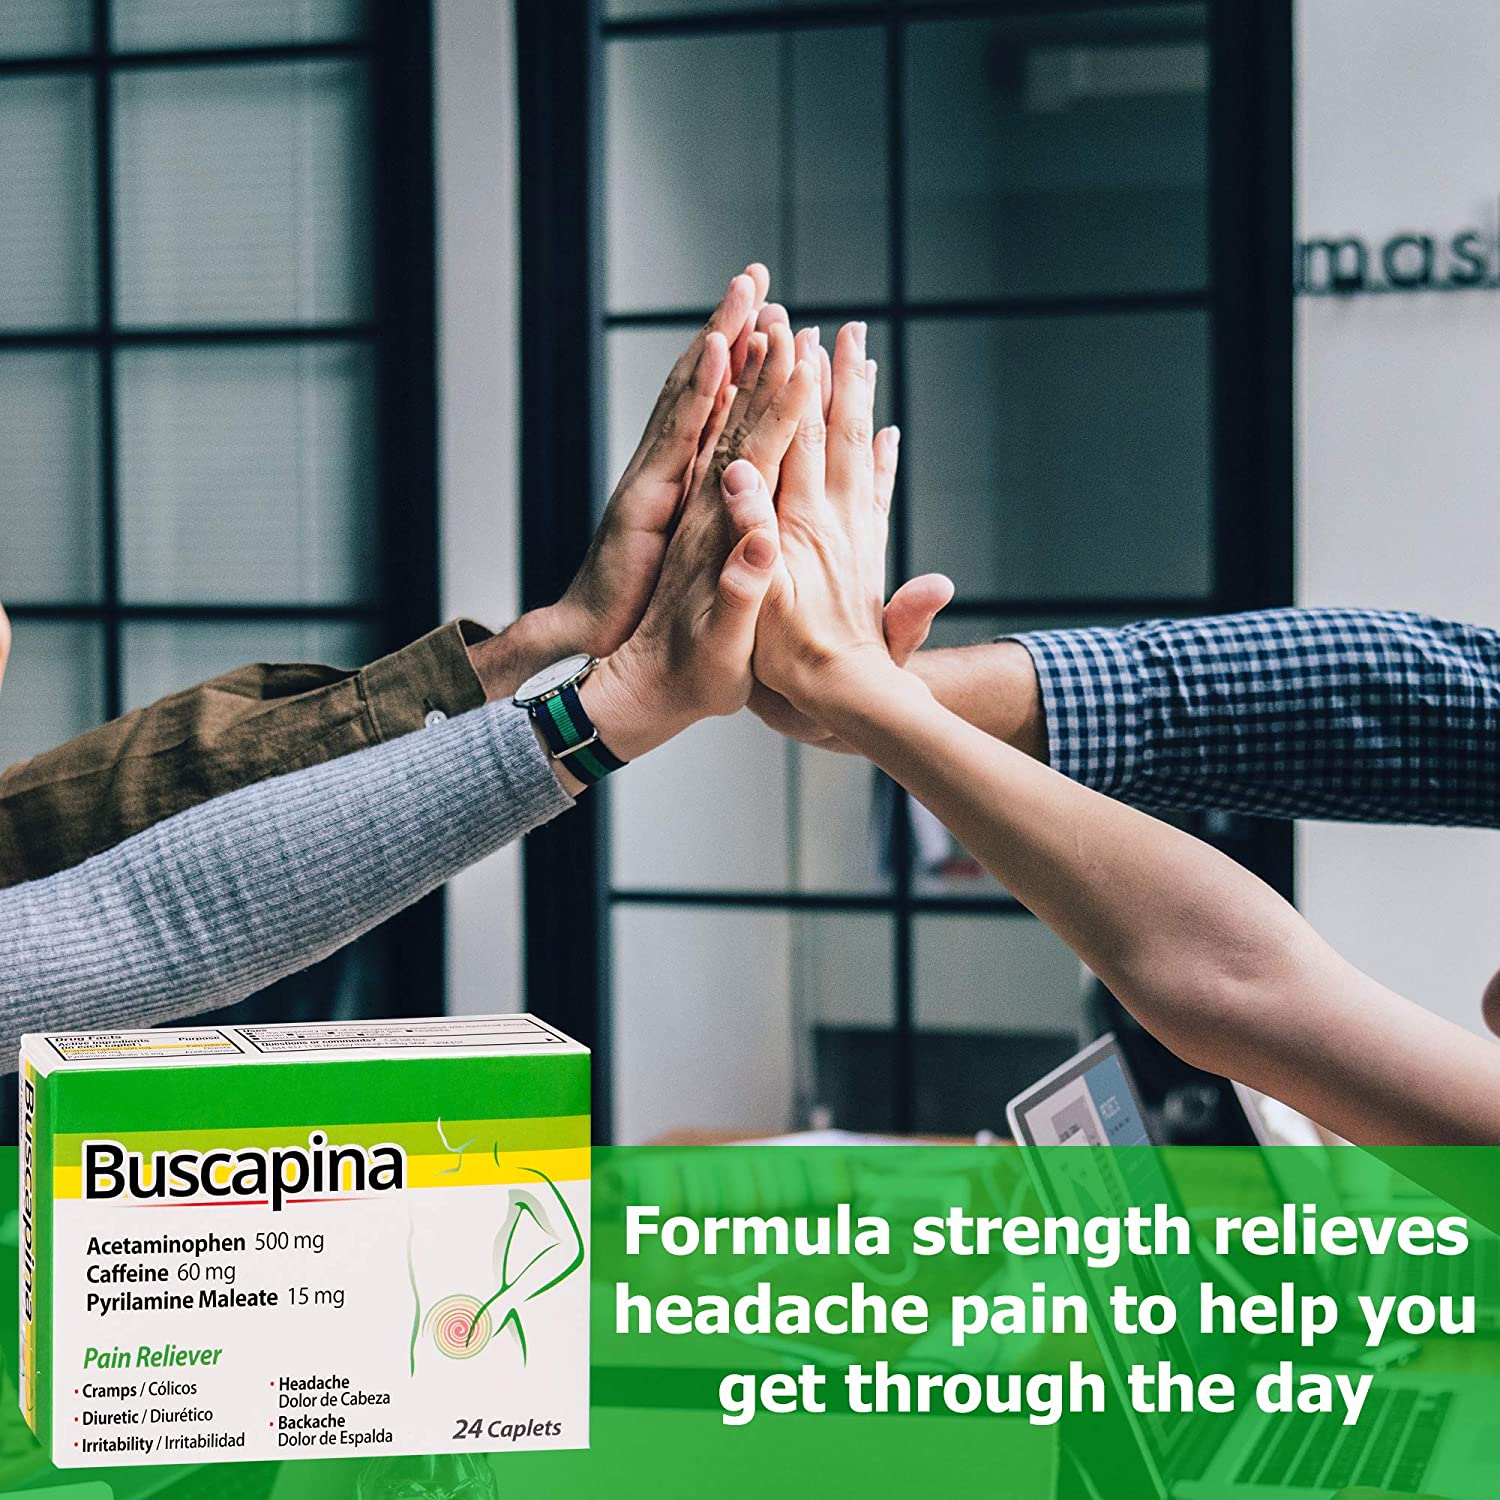 Buscapina Multi Symptom Pain Relief (24 caplets) - Menstrual Cramp Defense, Extra Strength for Headache, Backache, Bloating, Plus More for Men and ...